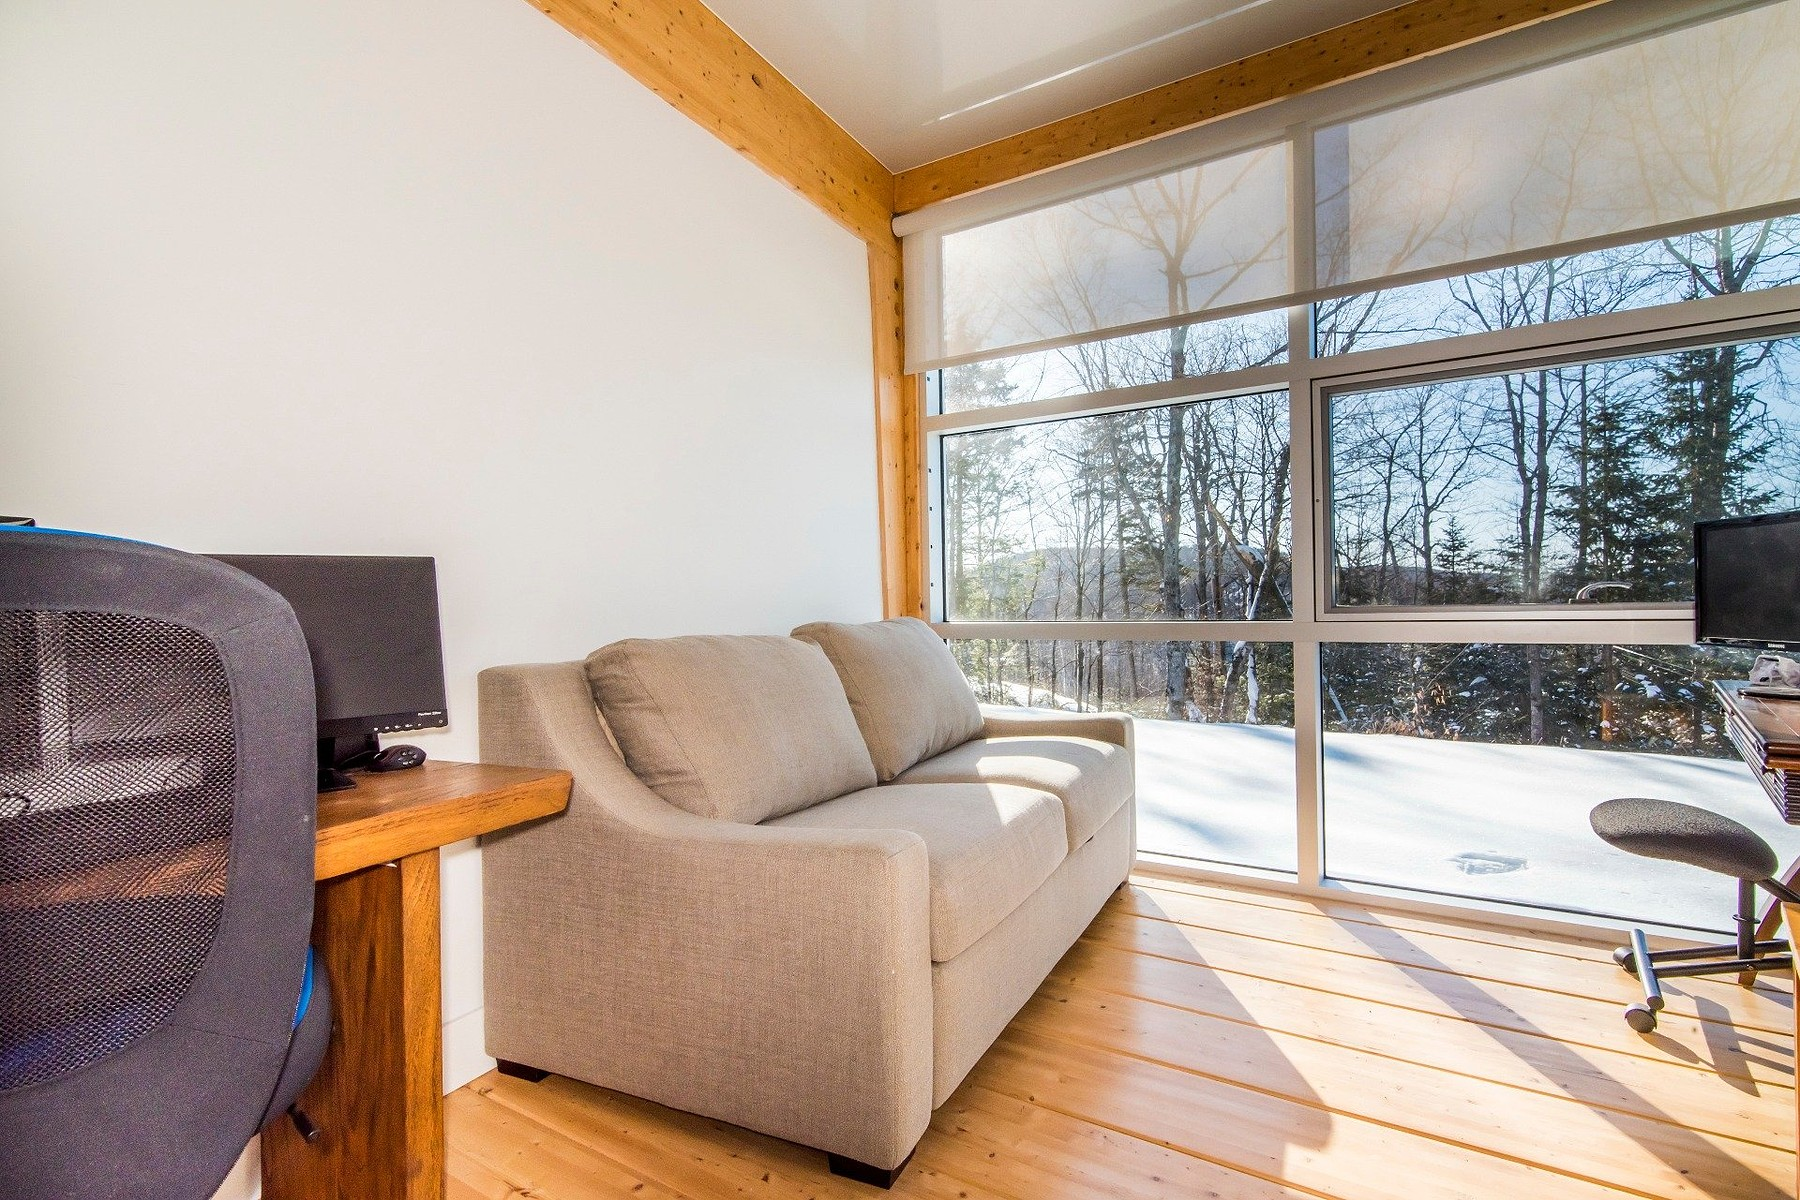 Additional photo for property listing at Saint-Hippolyte, Laurentides 10 Rue Tracy Saint-Hippolyte, Quebec J8A3G1 Canada